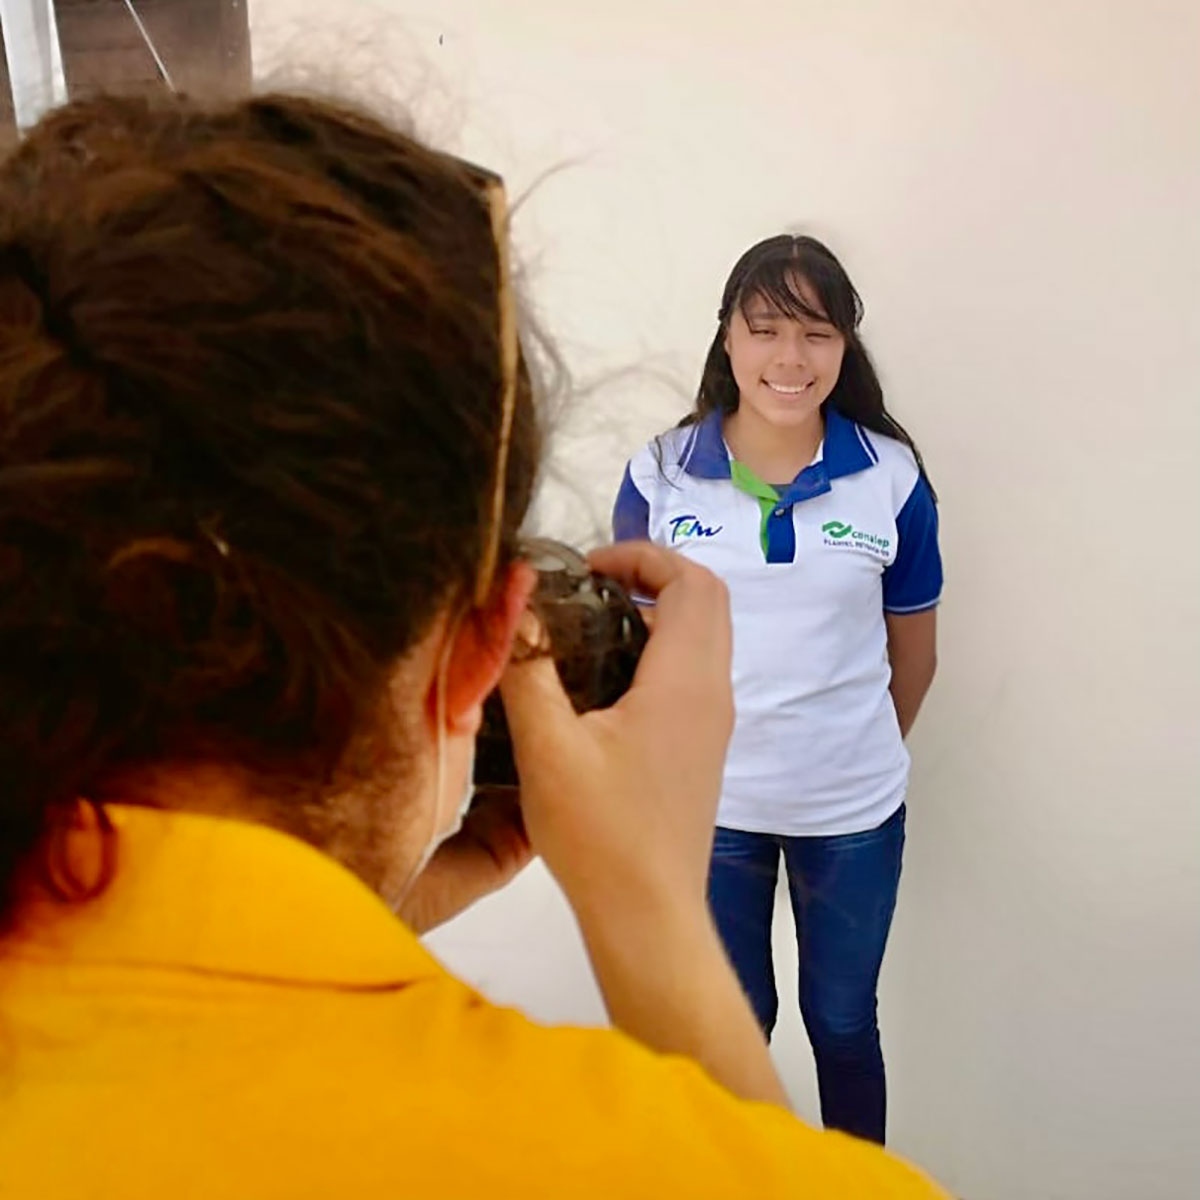 Taking photos of our scholarship students in Reynosa Mexico